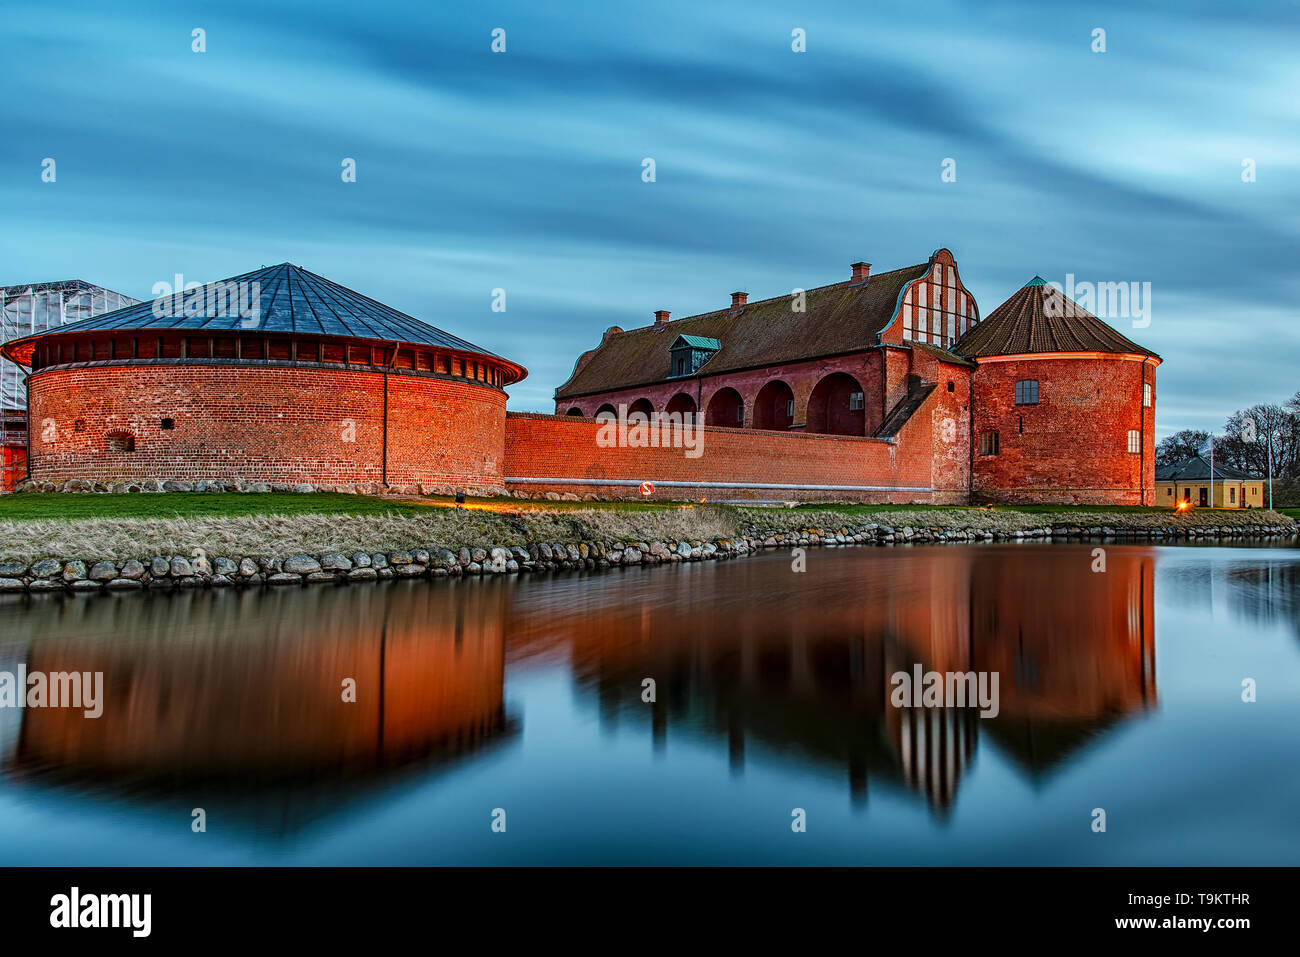 After the sun has set, Landskrona citadel looks beautiful in the blue hour light. Stock Photo